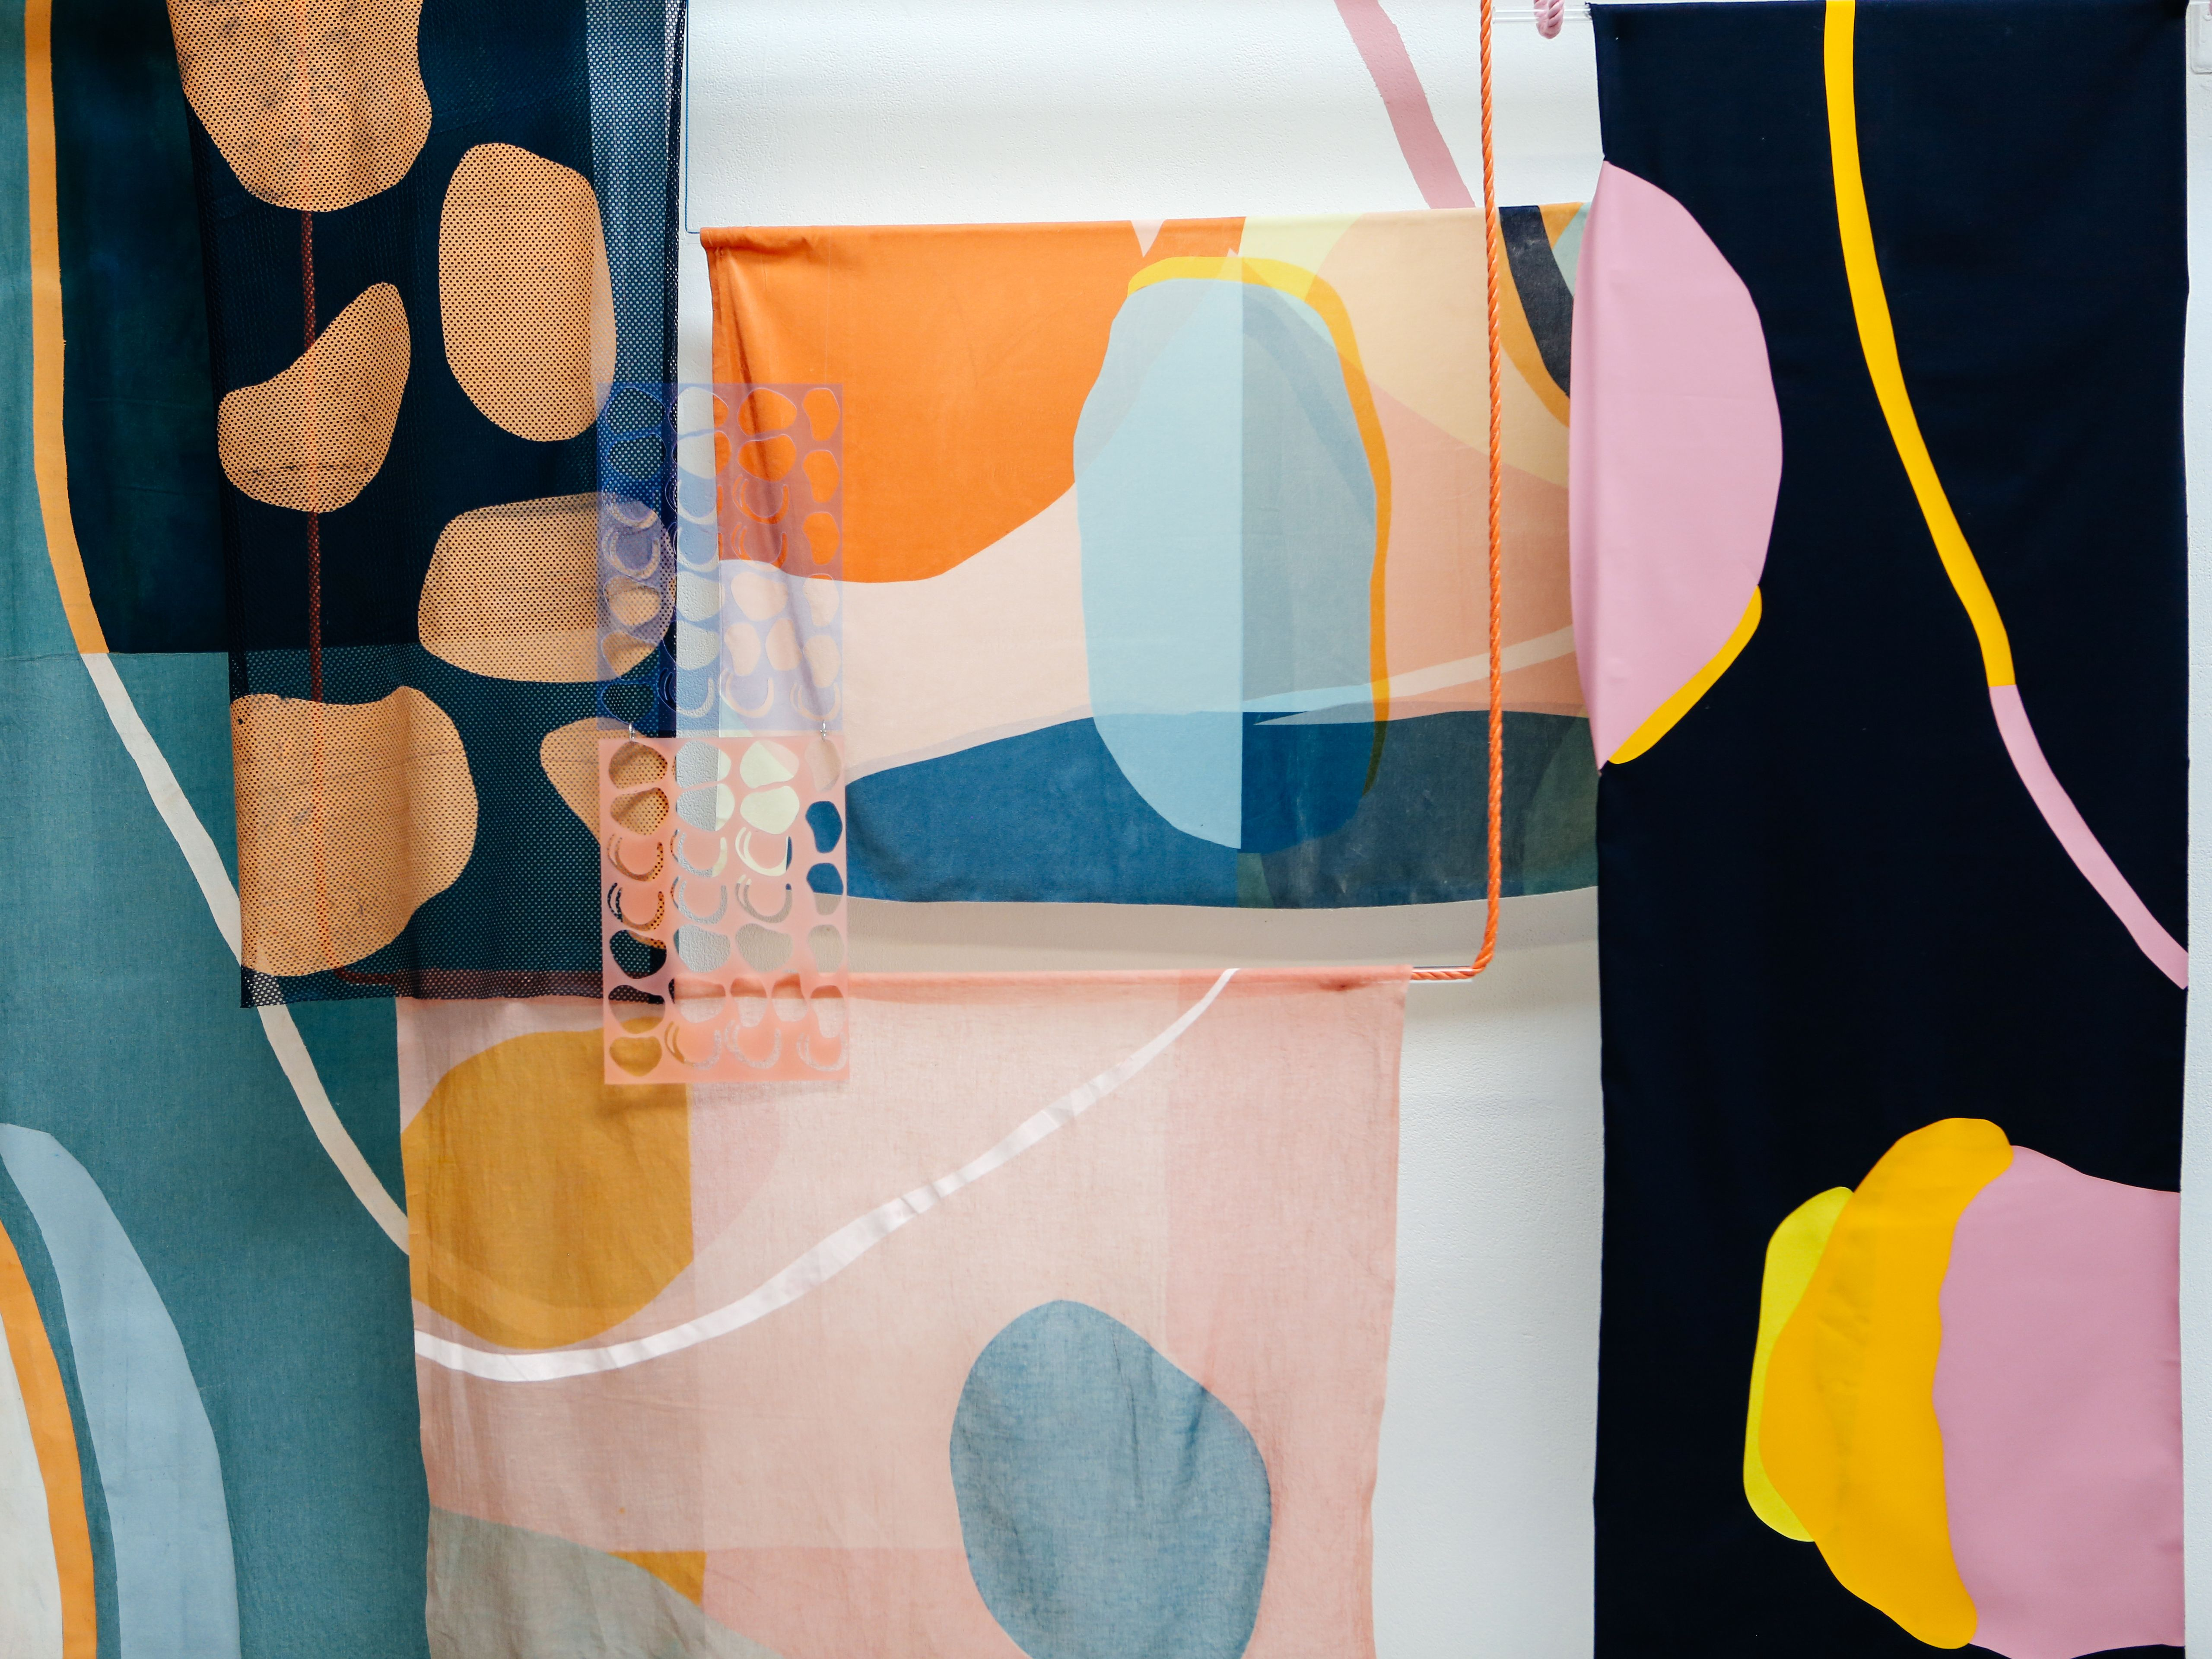 Textiles with organic shapes by Tayla-Jayne Sander